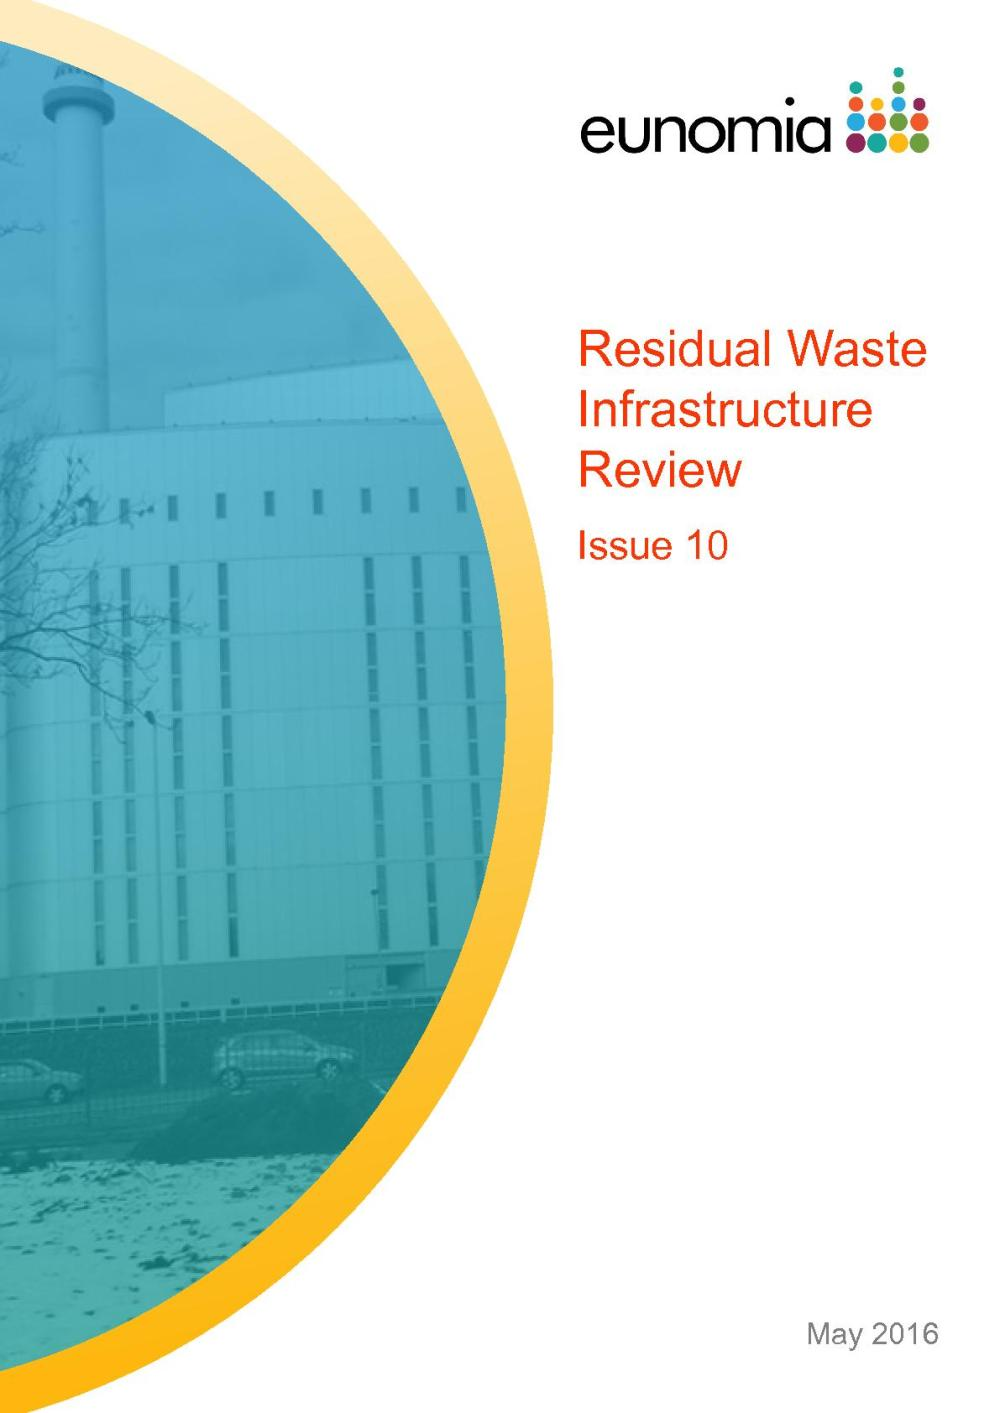 medium resolution of in addition to updating the picture for the uk eunomia s tenth issue of its residual waste infrastructure review examines the balance between residual